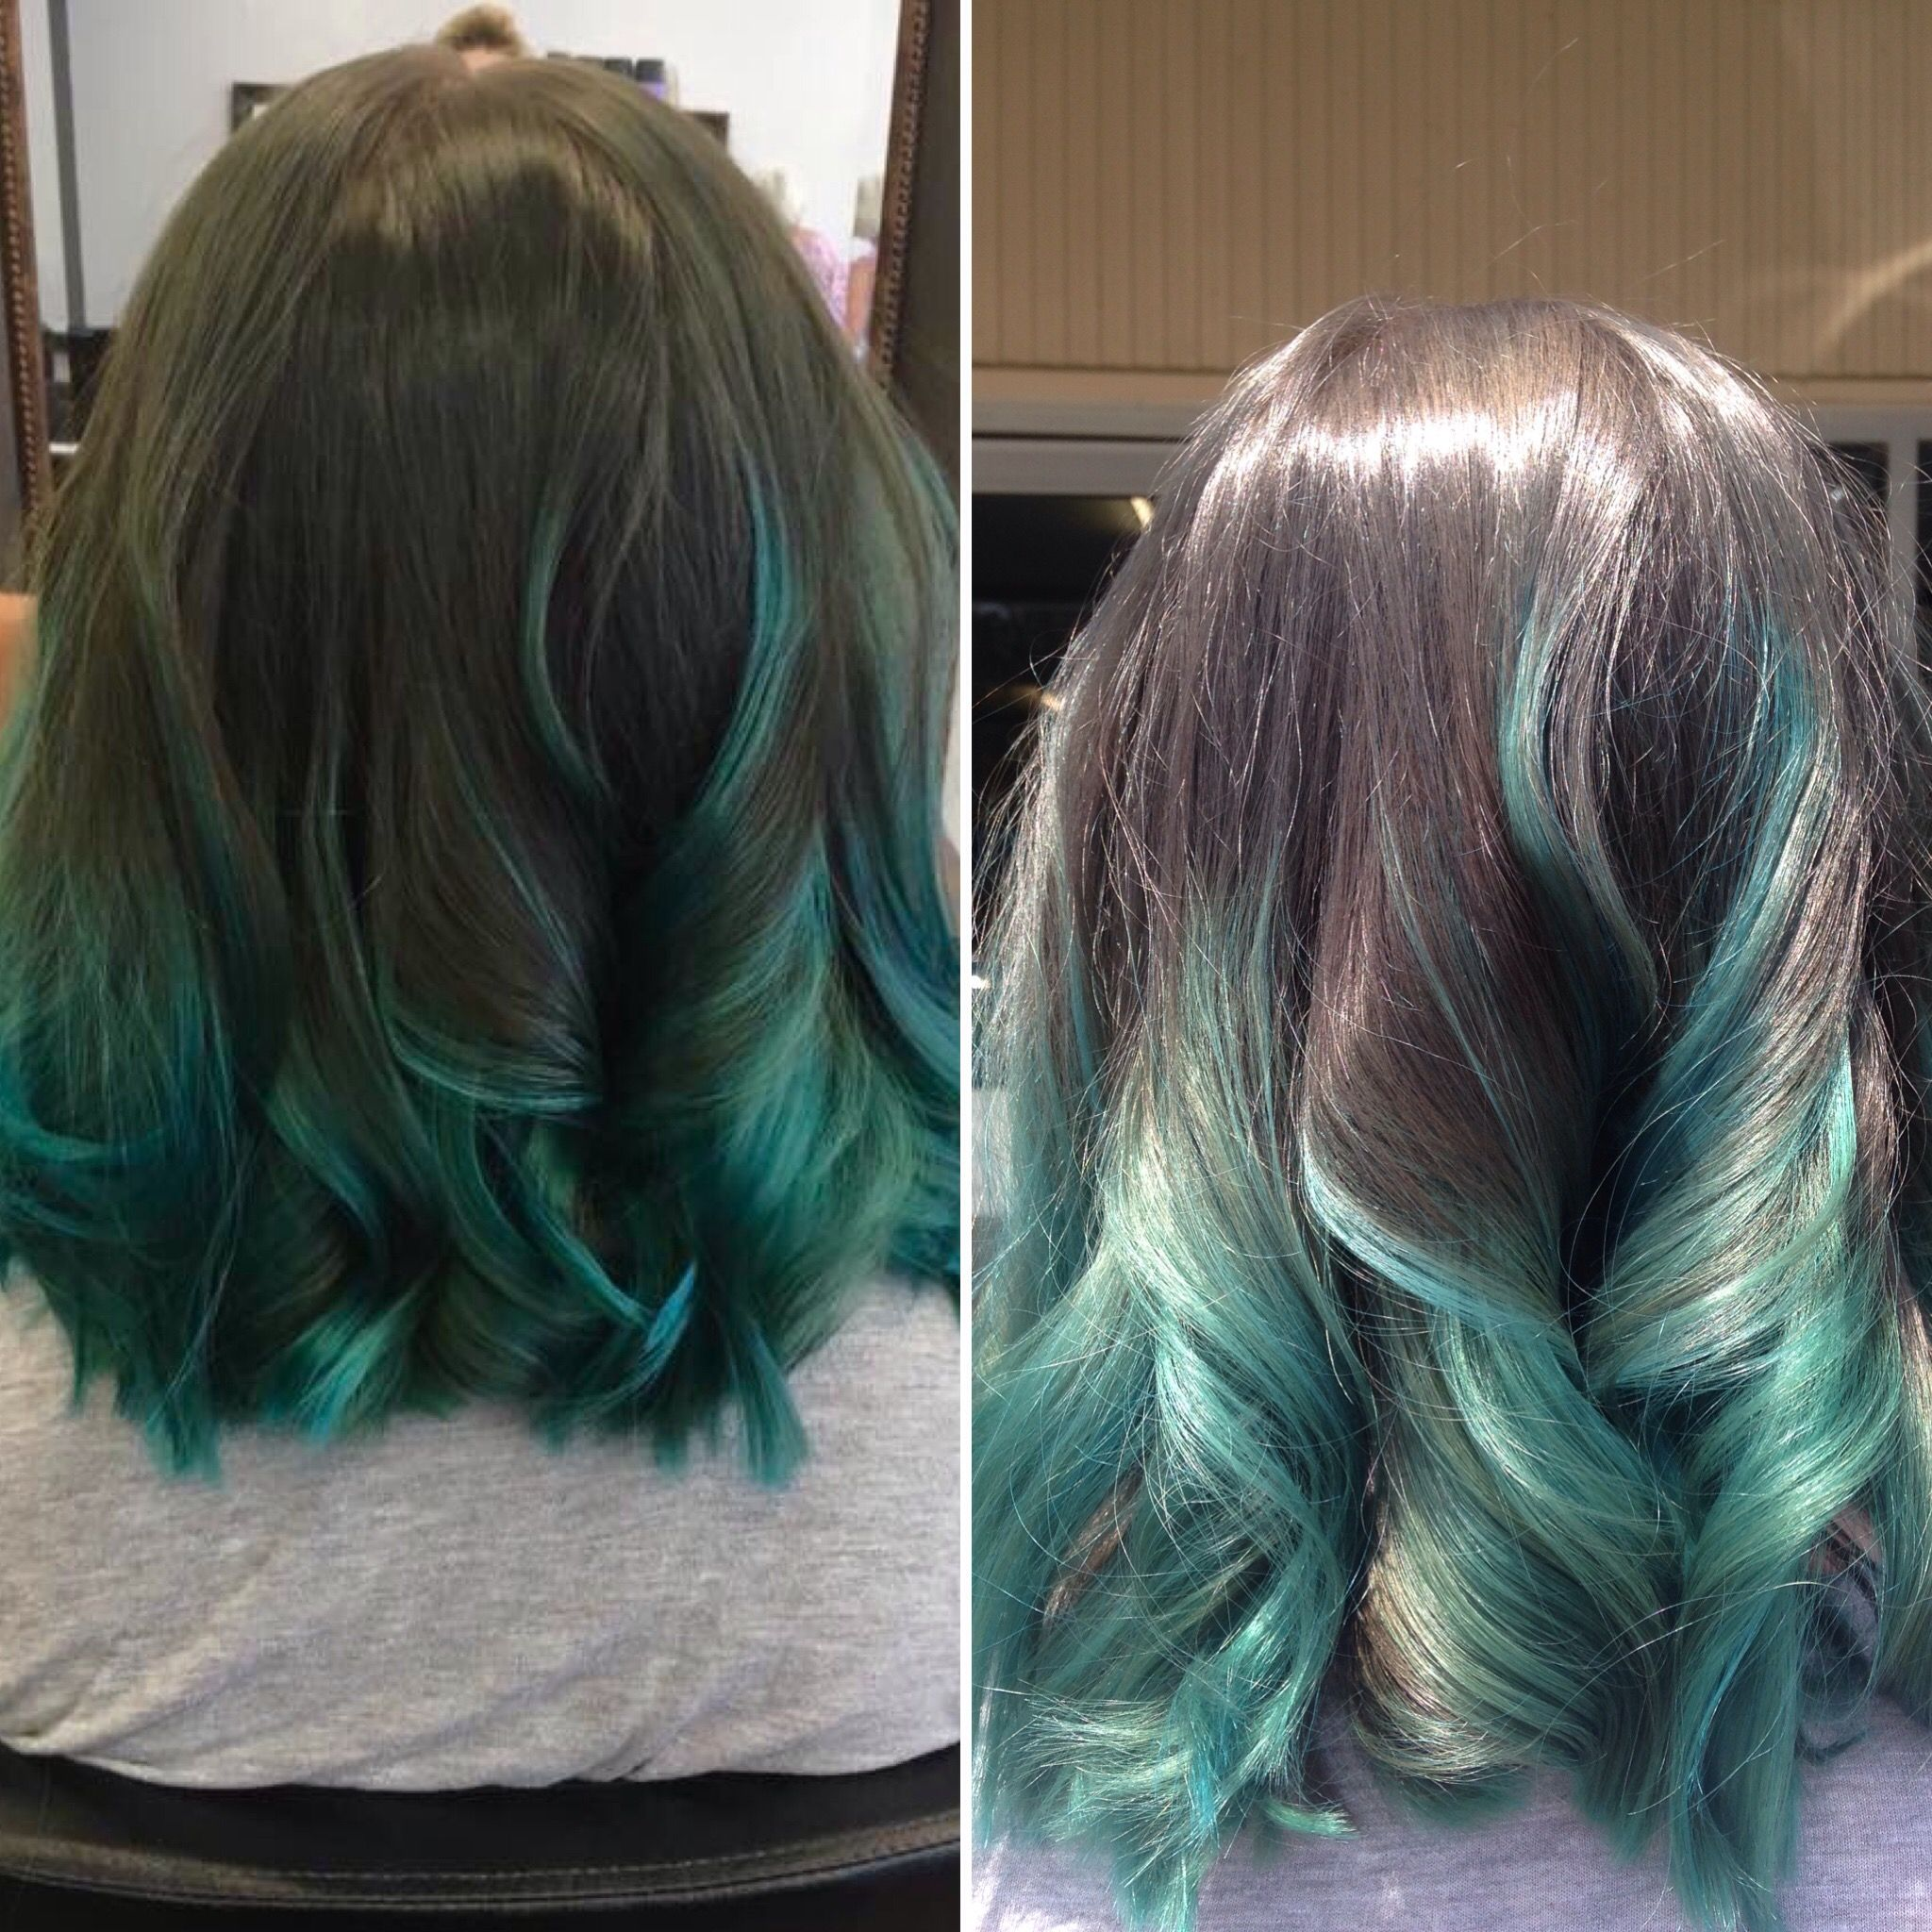 Brunette/teal ombre in artificial and natural light | Dye my hair, Long hair styles, Light hair